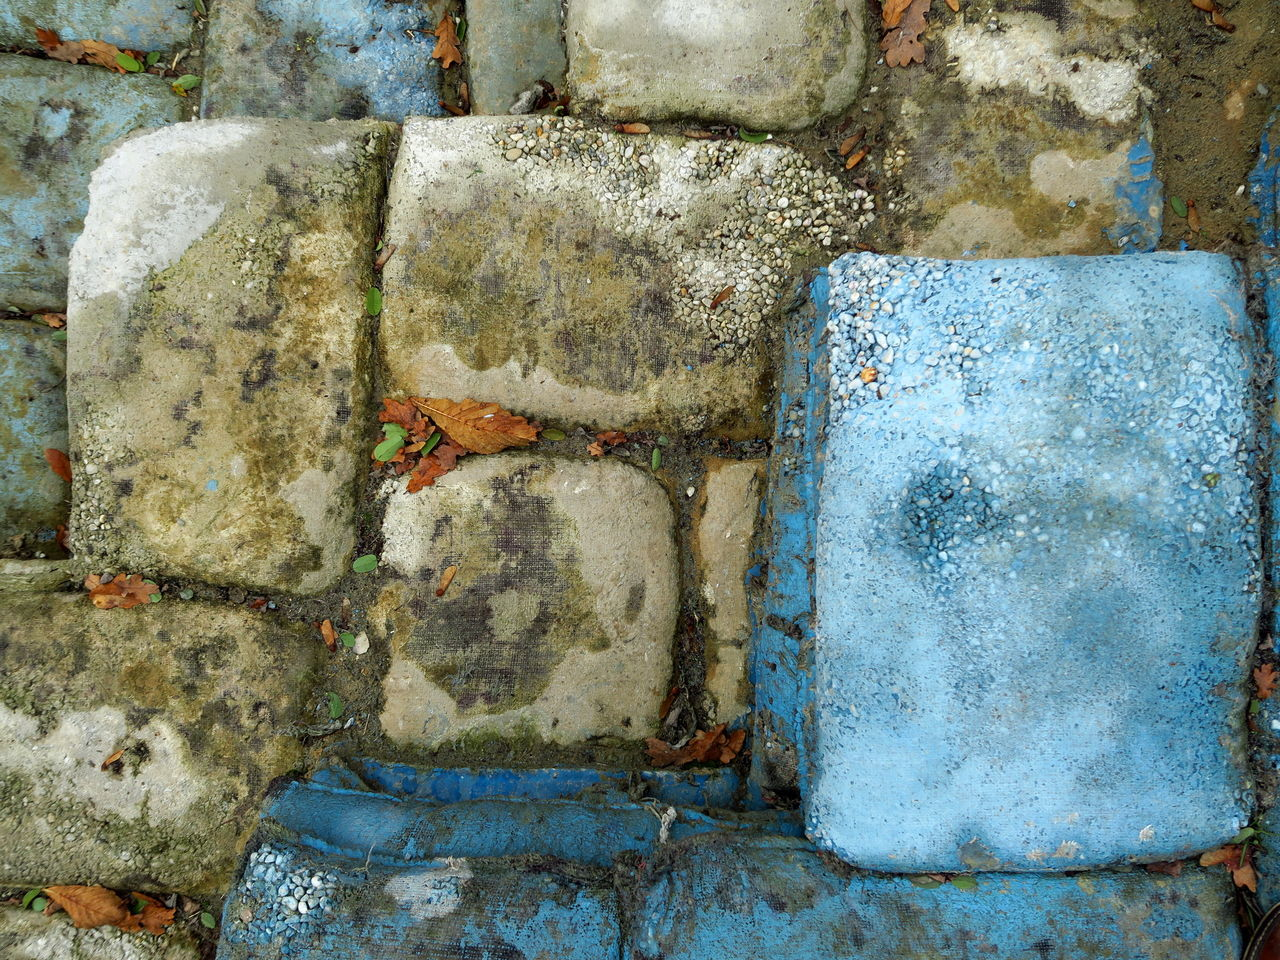 Sandbags, in concrete Abandoned Abstract Abstractions In Colors Architecture Blue Squares In Pattern Built Structure Close-up Coloursplash Concrete Concrete Texture Concrete Wall Day No People Outdoors Pattern Patterns Patterns & Textures Patterns In Nature Rectangle Sandbags Structure And Nature Structures & Lines Taxture Water Wall